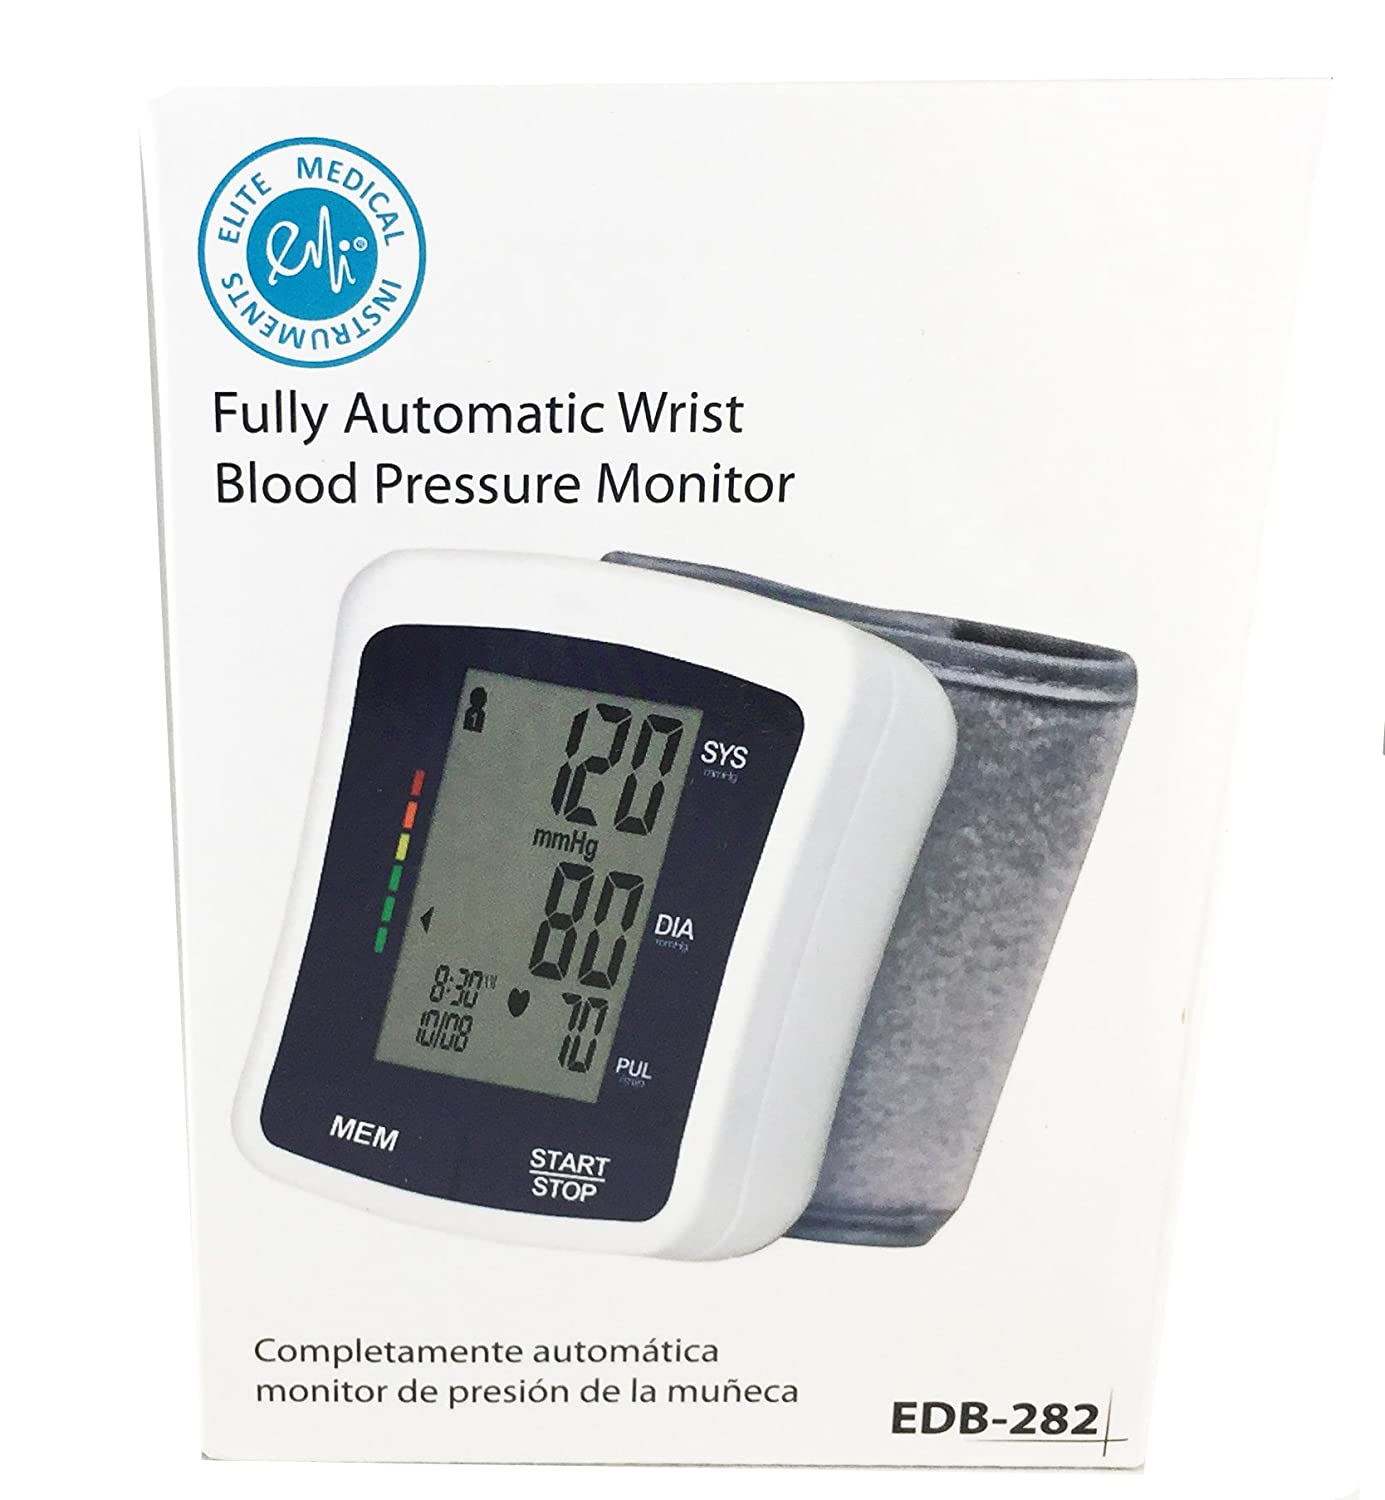 Amazon.com: EMI Wrist Automatic Digital Blood pressure Monitor with Case: Health & Personal Care